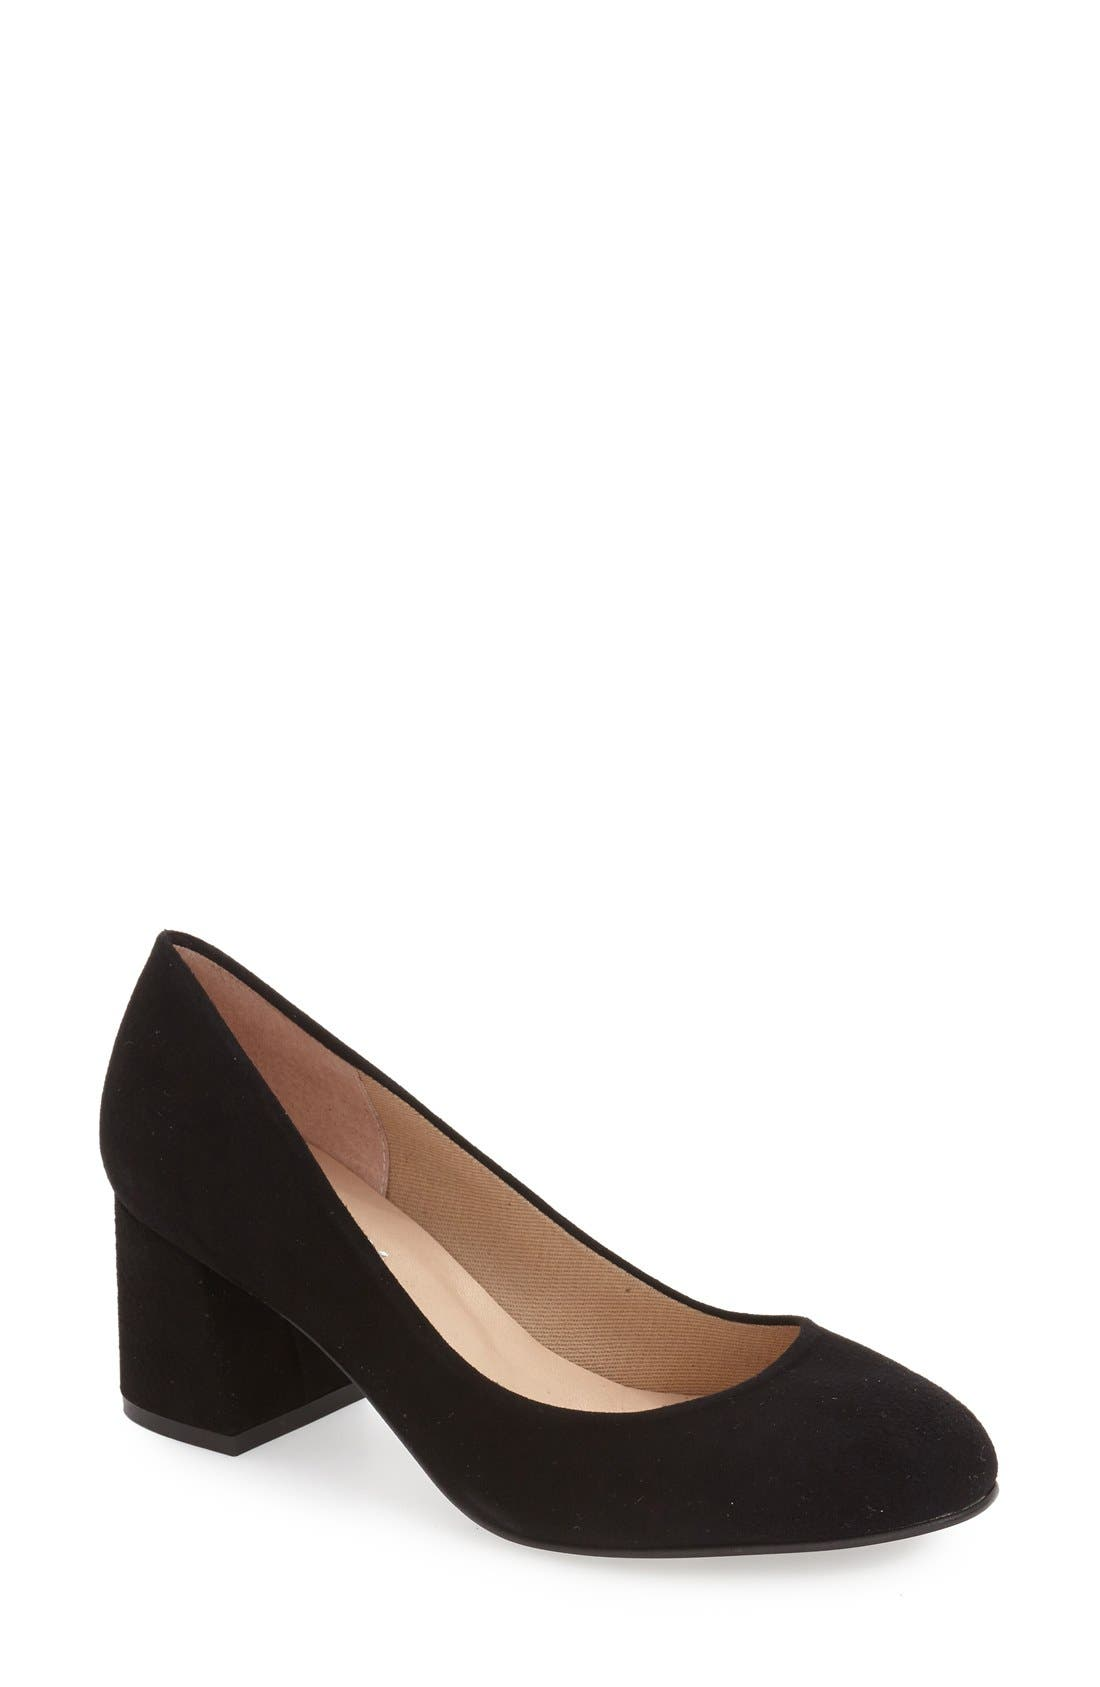 FRENCH SOLE 'Trance' Block Heel Pump, Main, color, 001